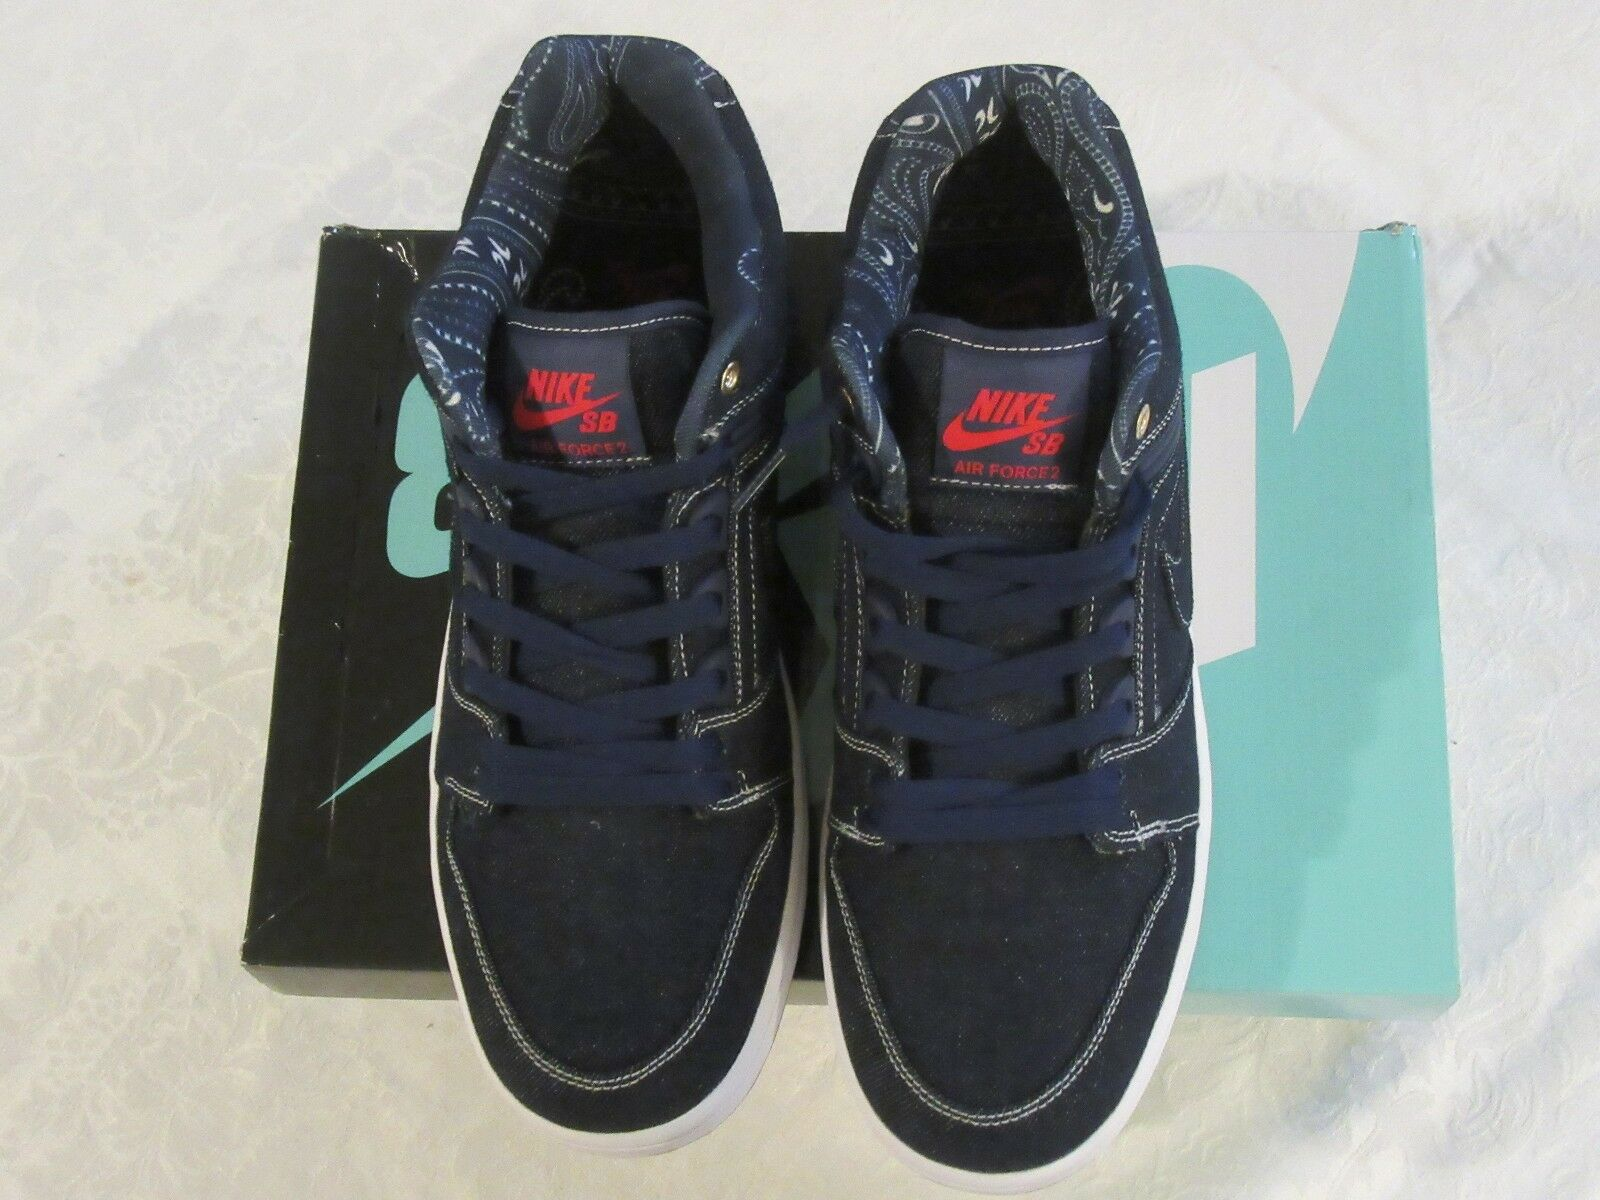 Nike SB Air Force II 2 East West Coast Rivals Tupac Biggie Smalls Low AO0298 441